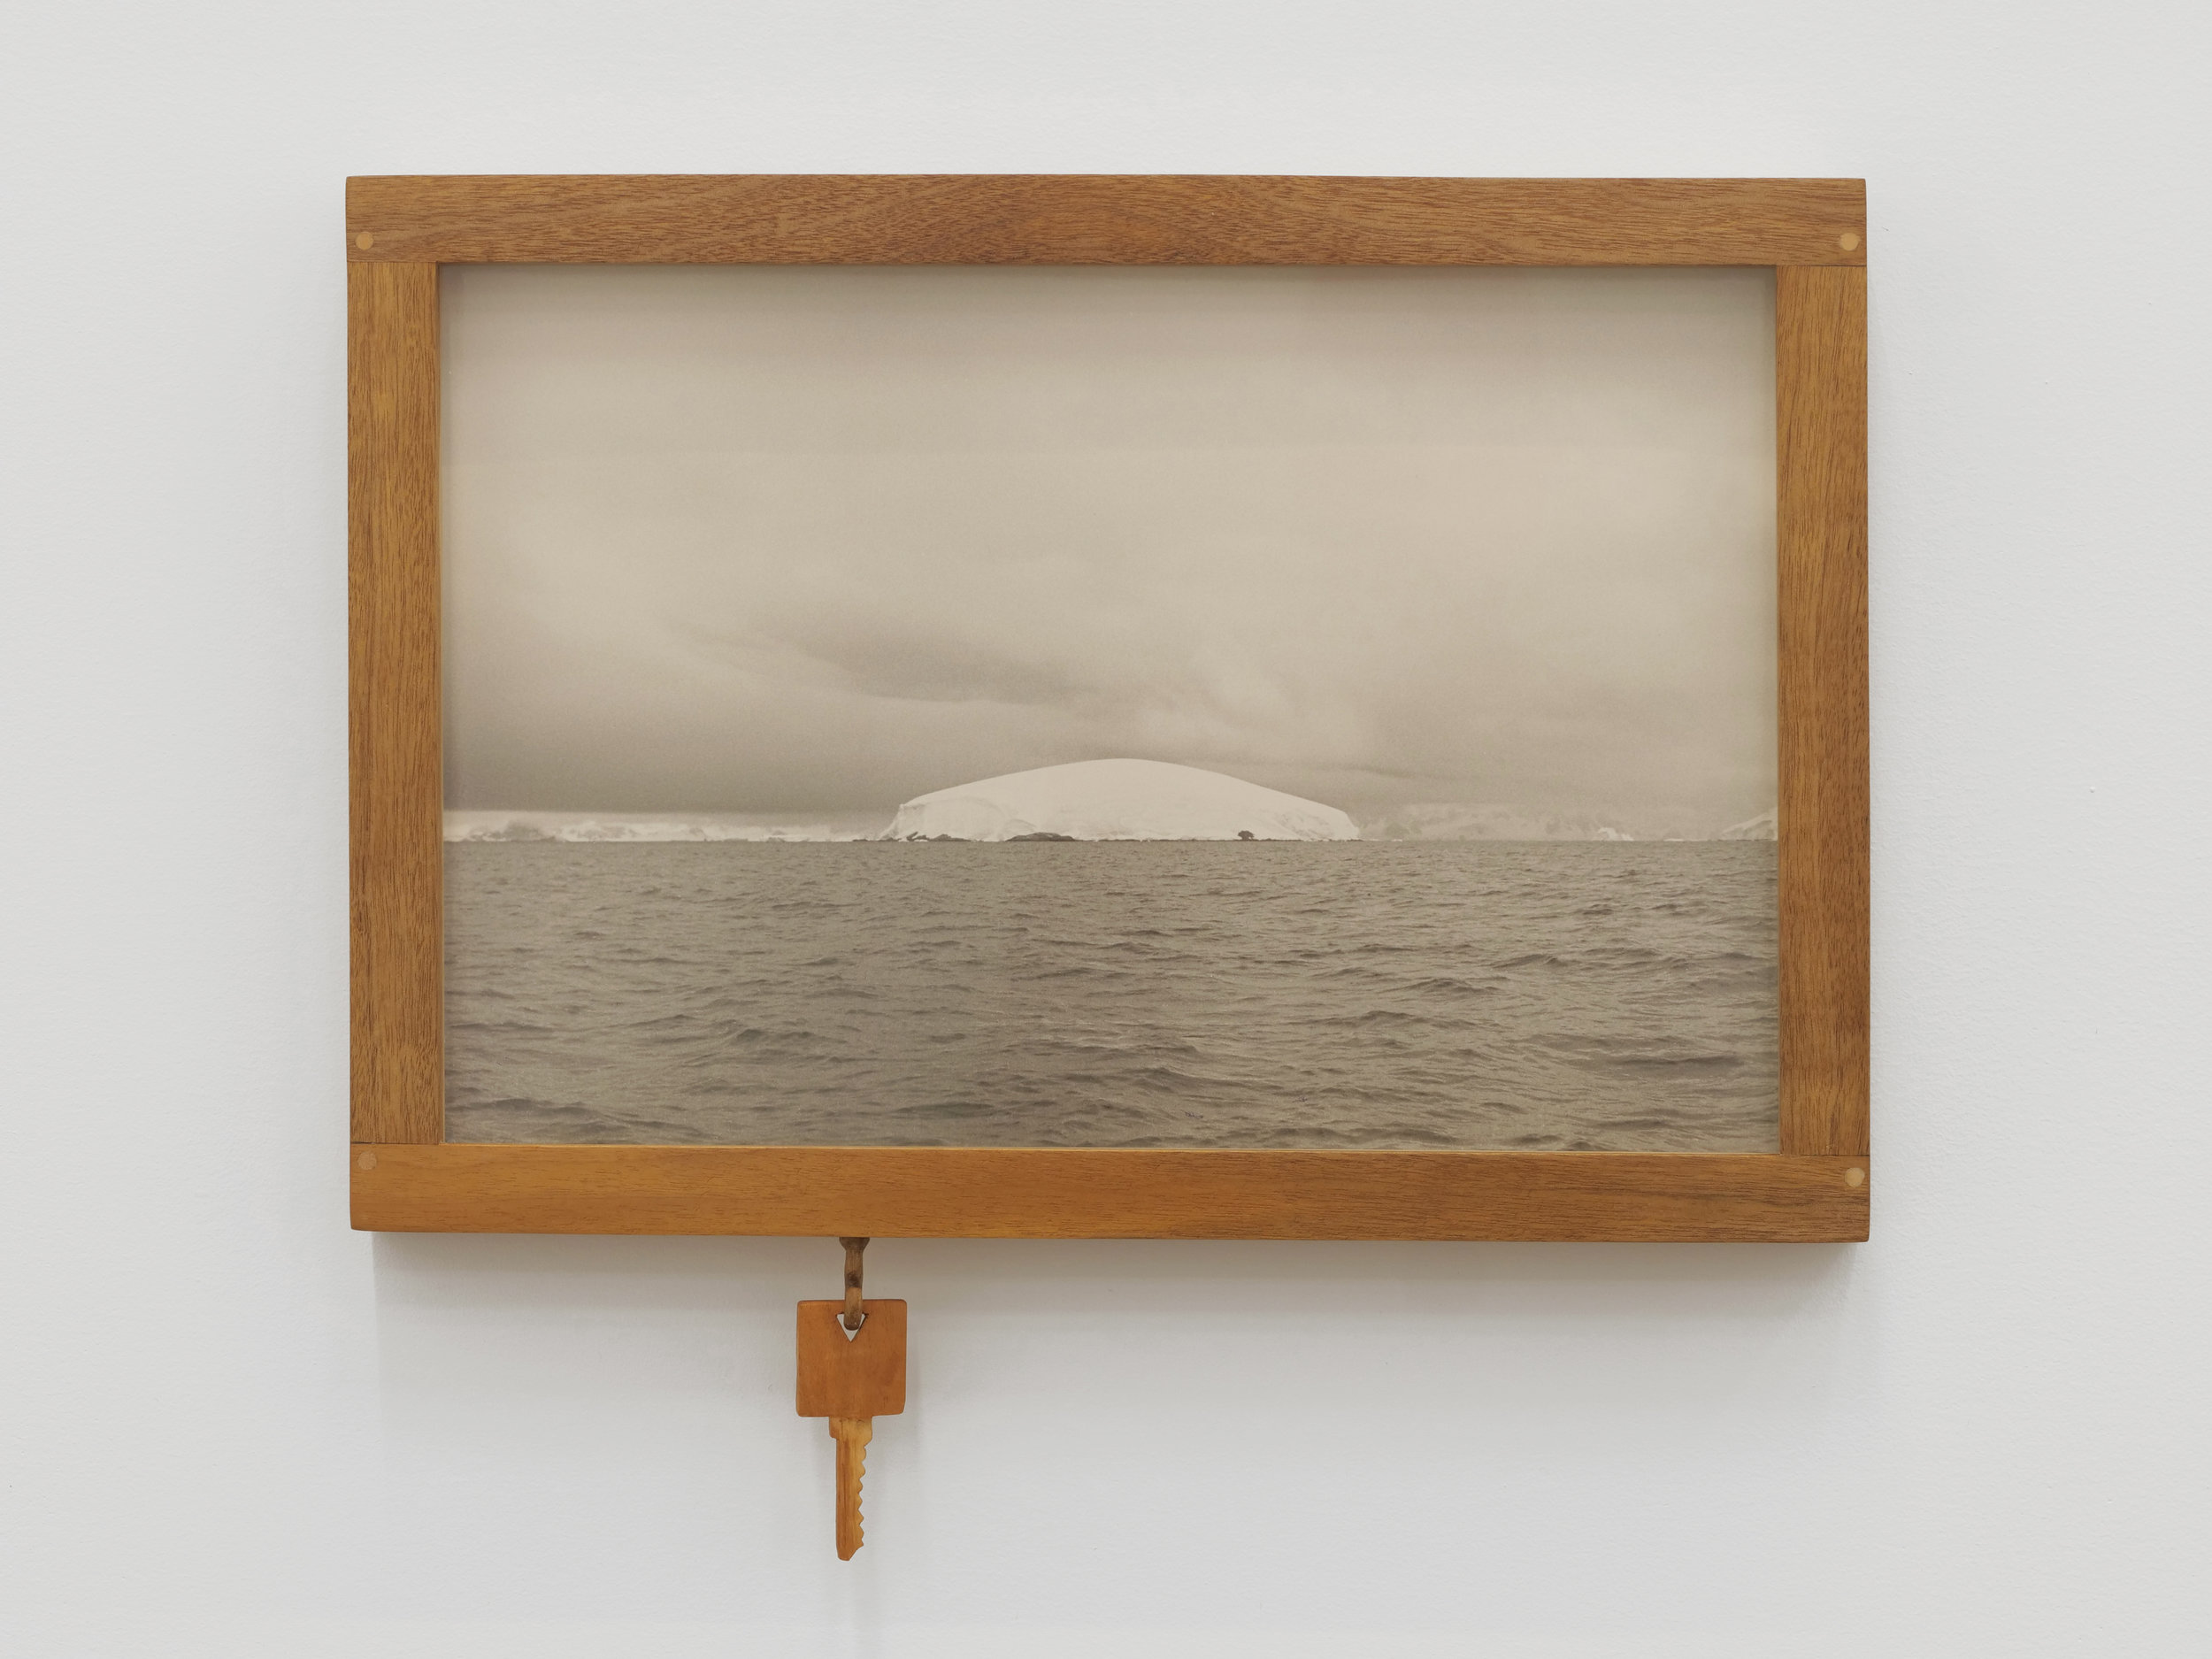 Will Rogan,  Buls Island , 2018, gelatin silver print, wood, 14 x 15 1/4 x 1 1/2 in